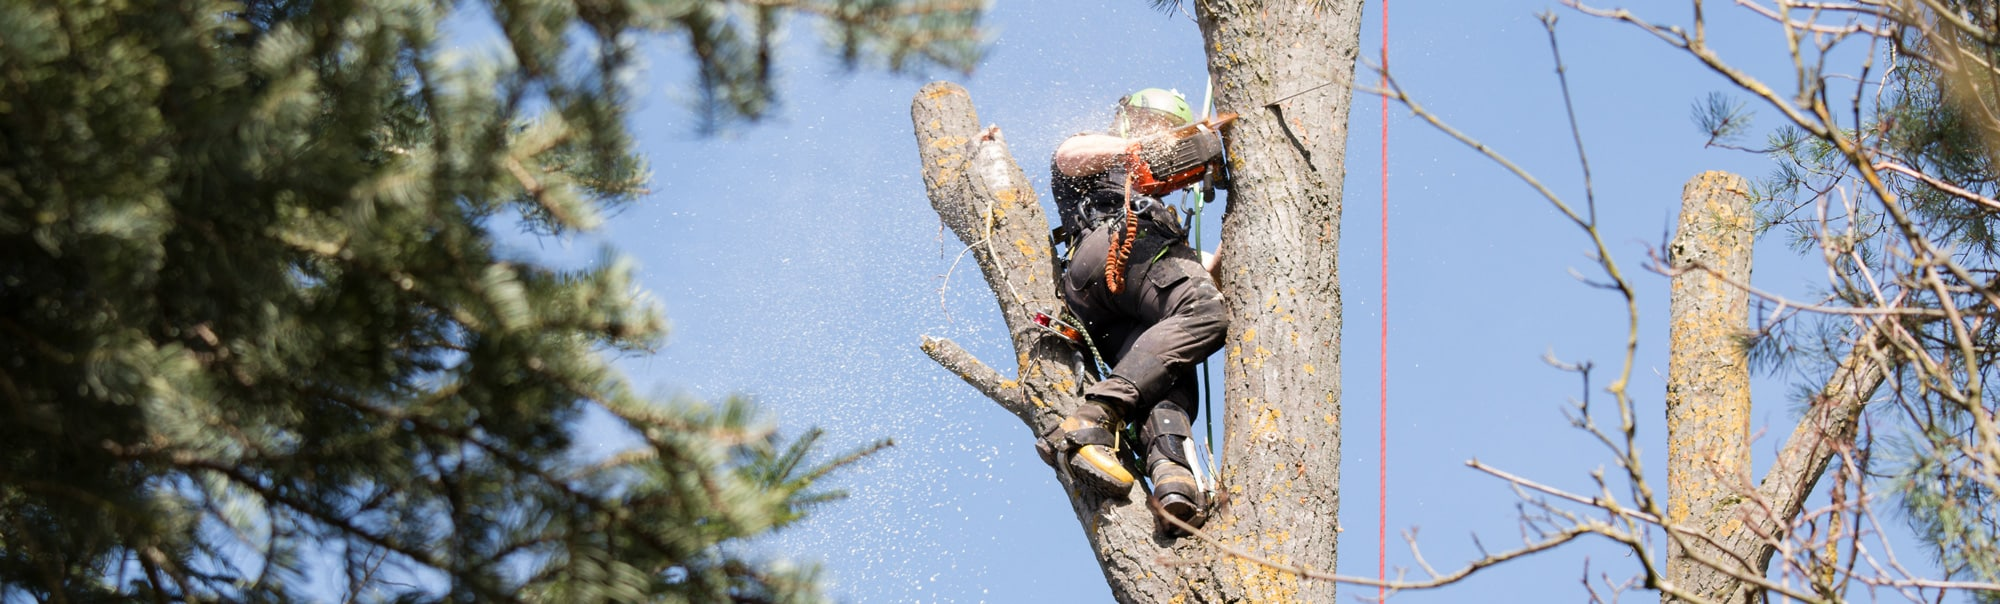 tree service worker in a tree